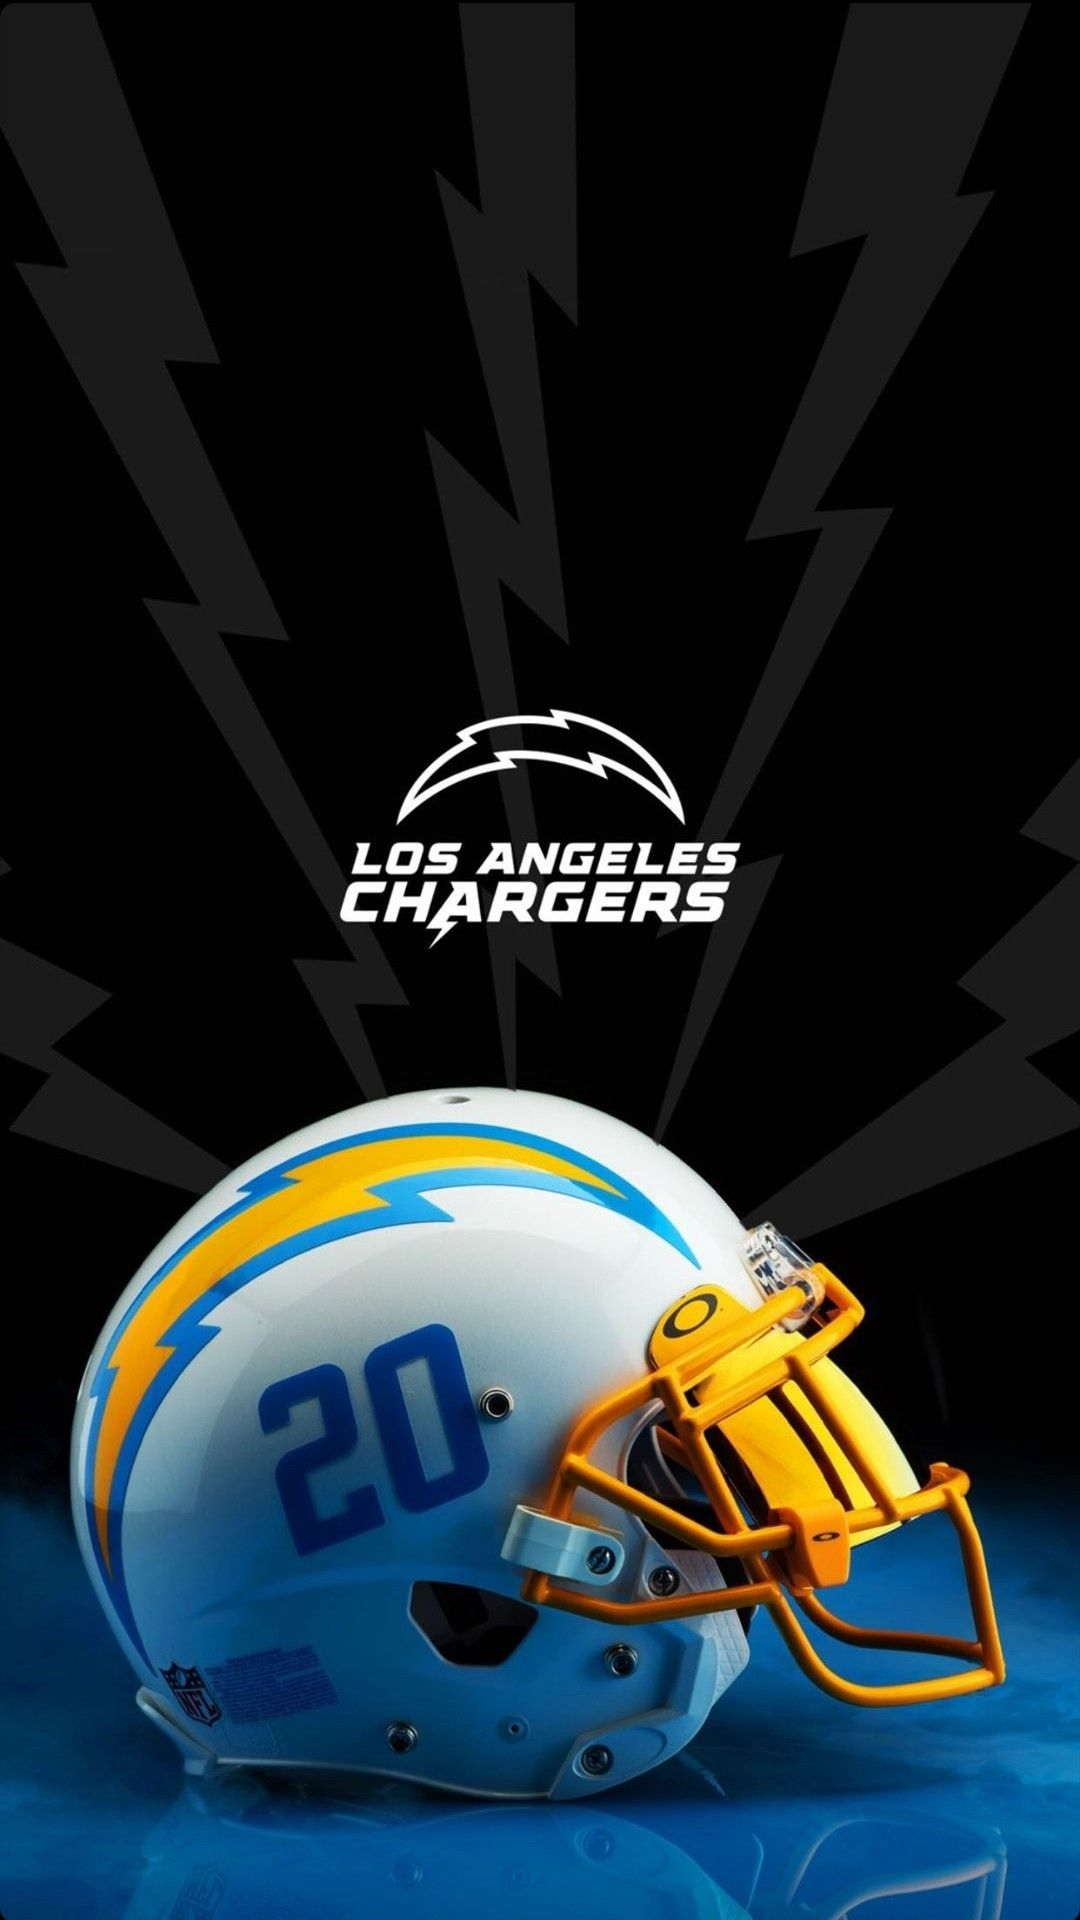 Los Angeles Chargers In 2020 Los Angeles Chargers Chargers Los Angeles